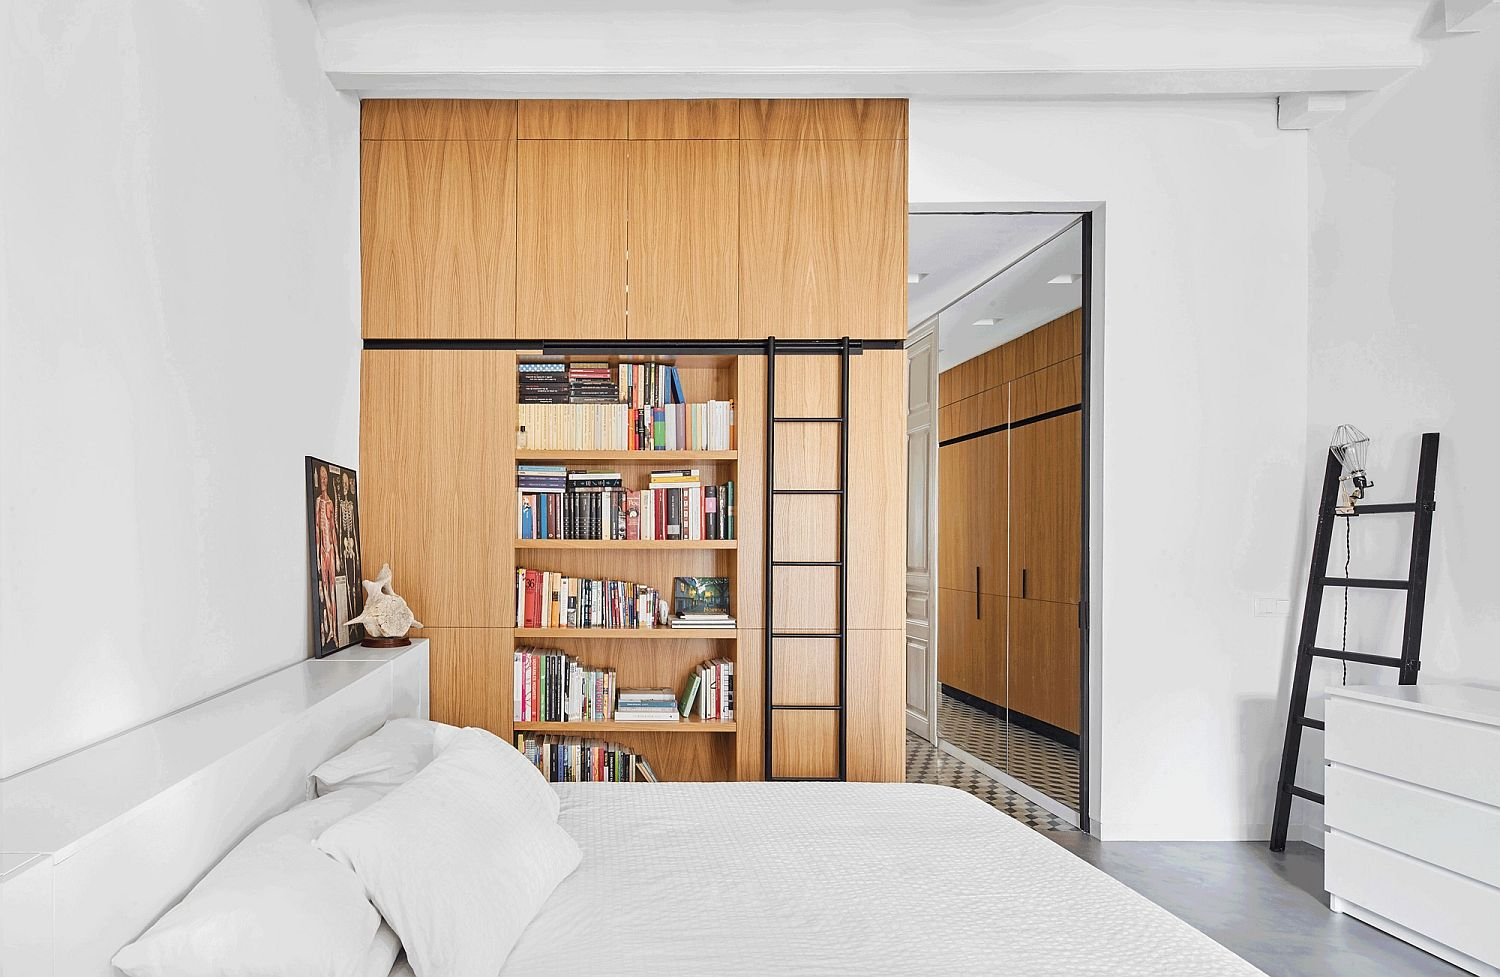 Oak-cabinets-and-multi-tasking-shelves-are-spread-out-in-the-apartment